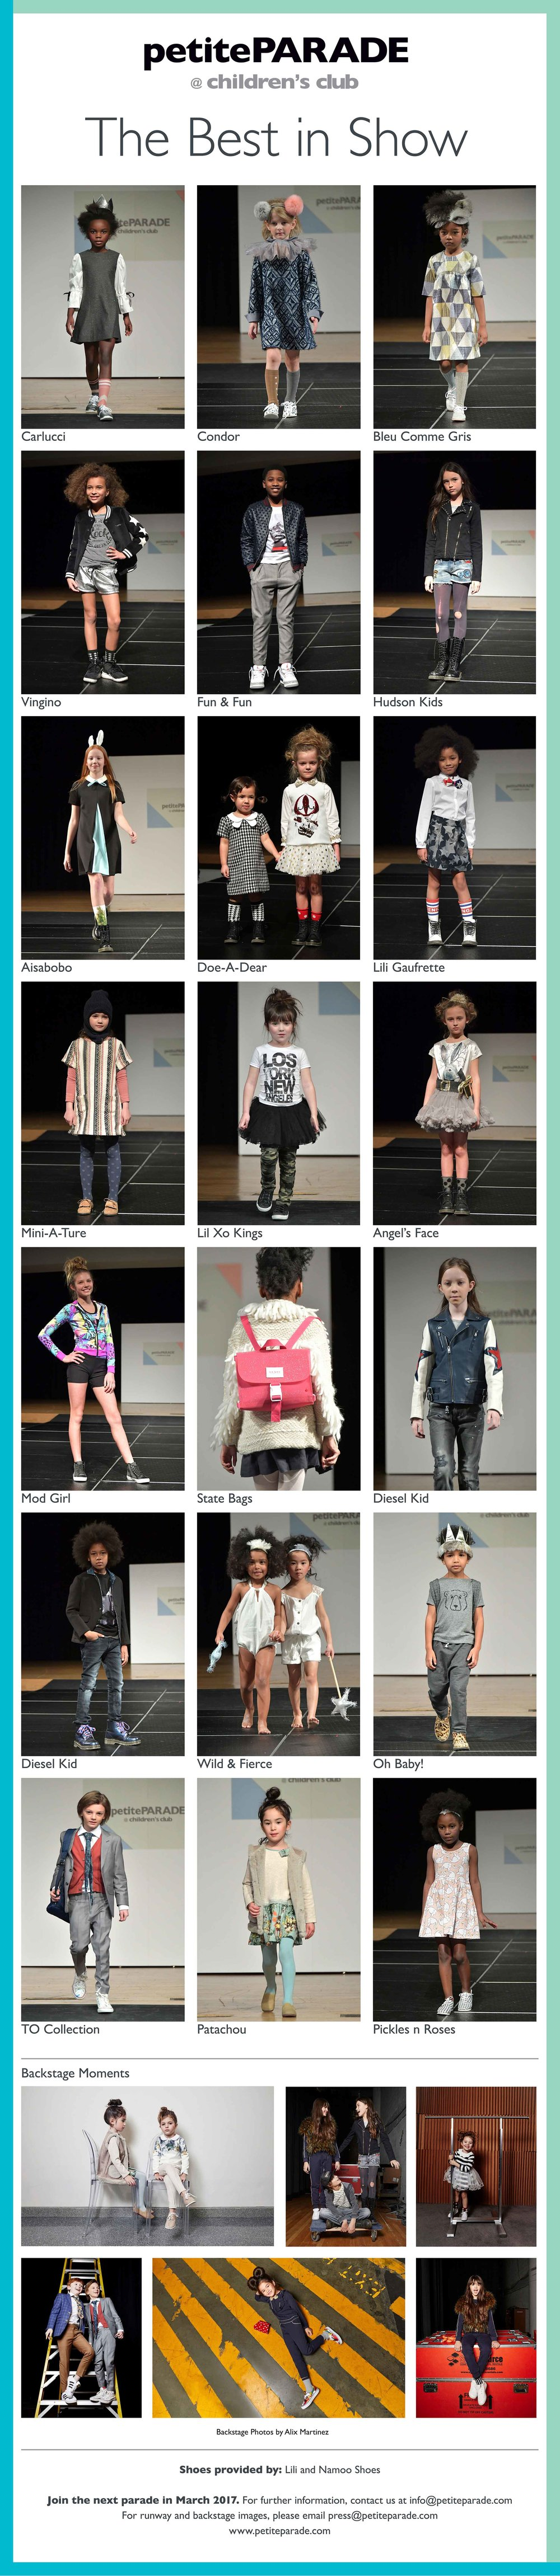 Merging two of the top platforms in the Children's Fashion Industry, petitePARADE and Children's Club partnered to present a Multi-Brand Showcase with over 20 exhibitors at the Jacob Javits Center.